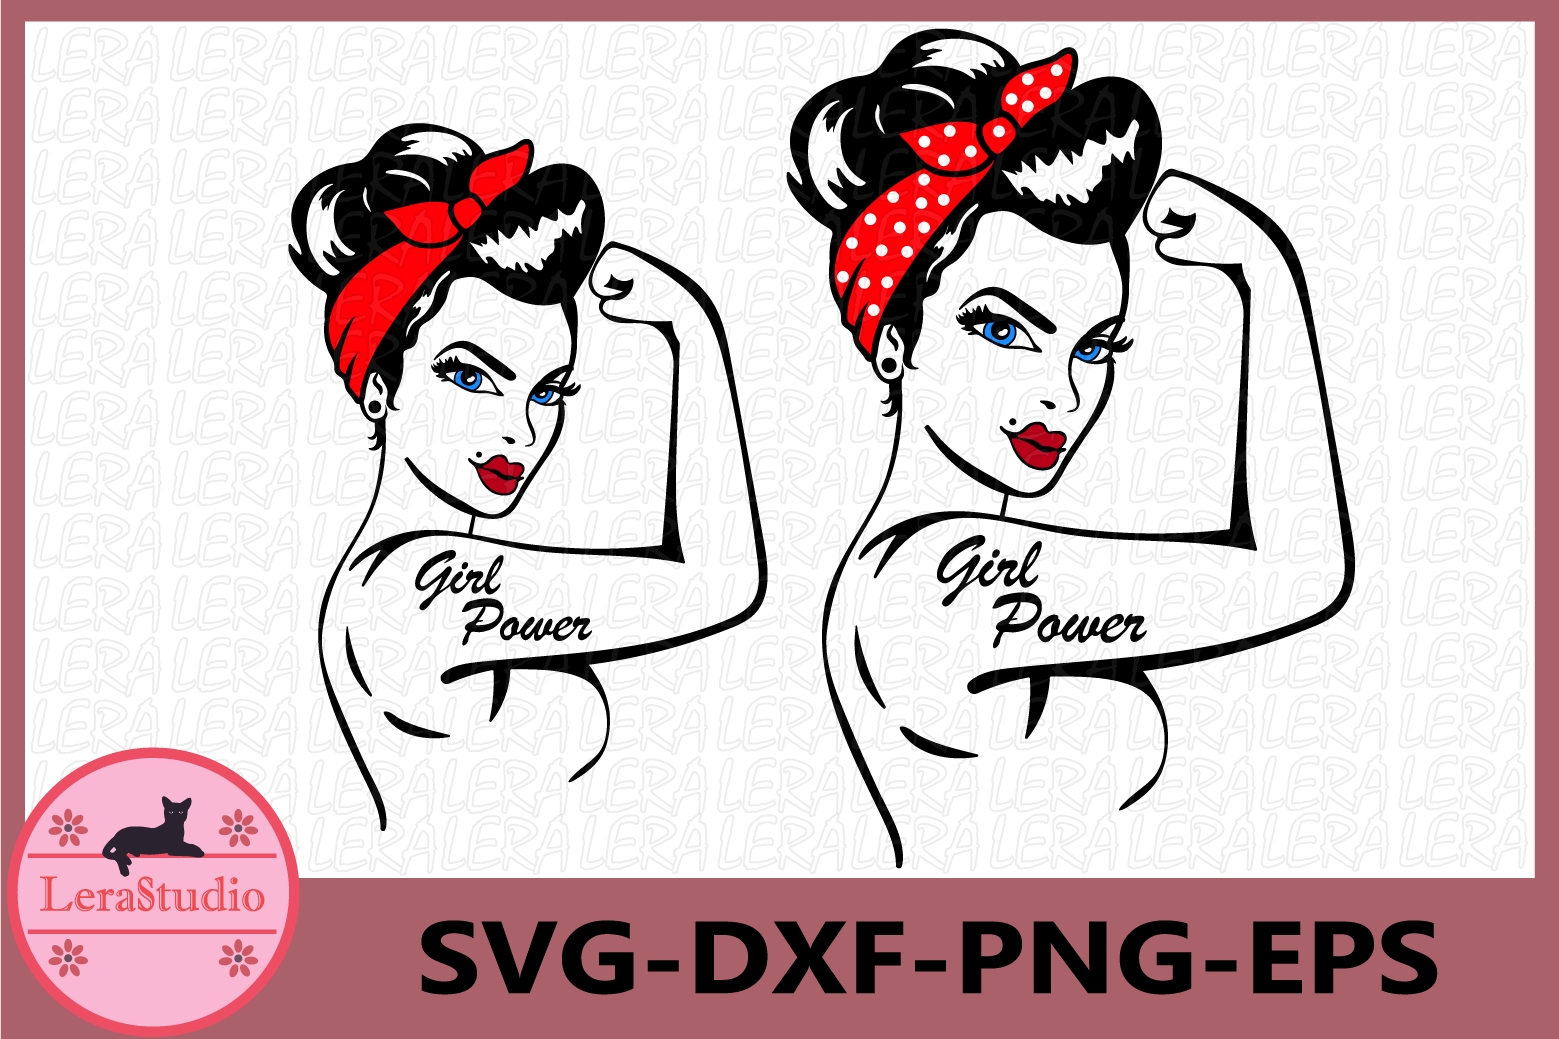 Girl Power SVG, Girl Power Silhouette, Clipart example image 1